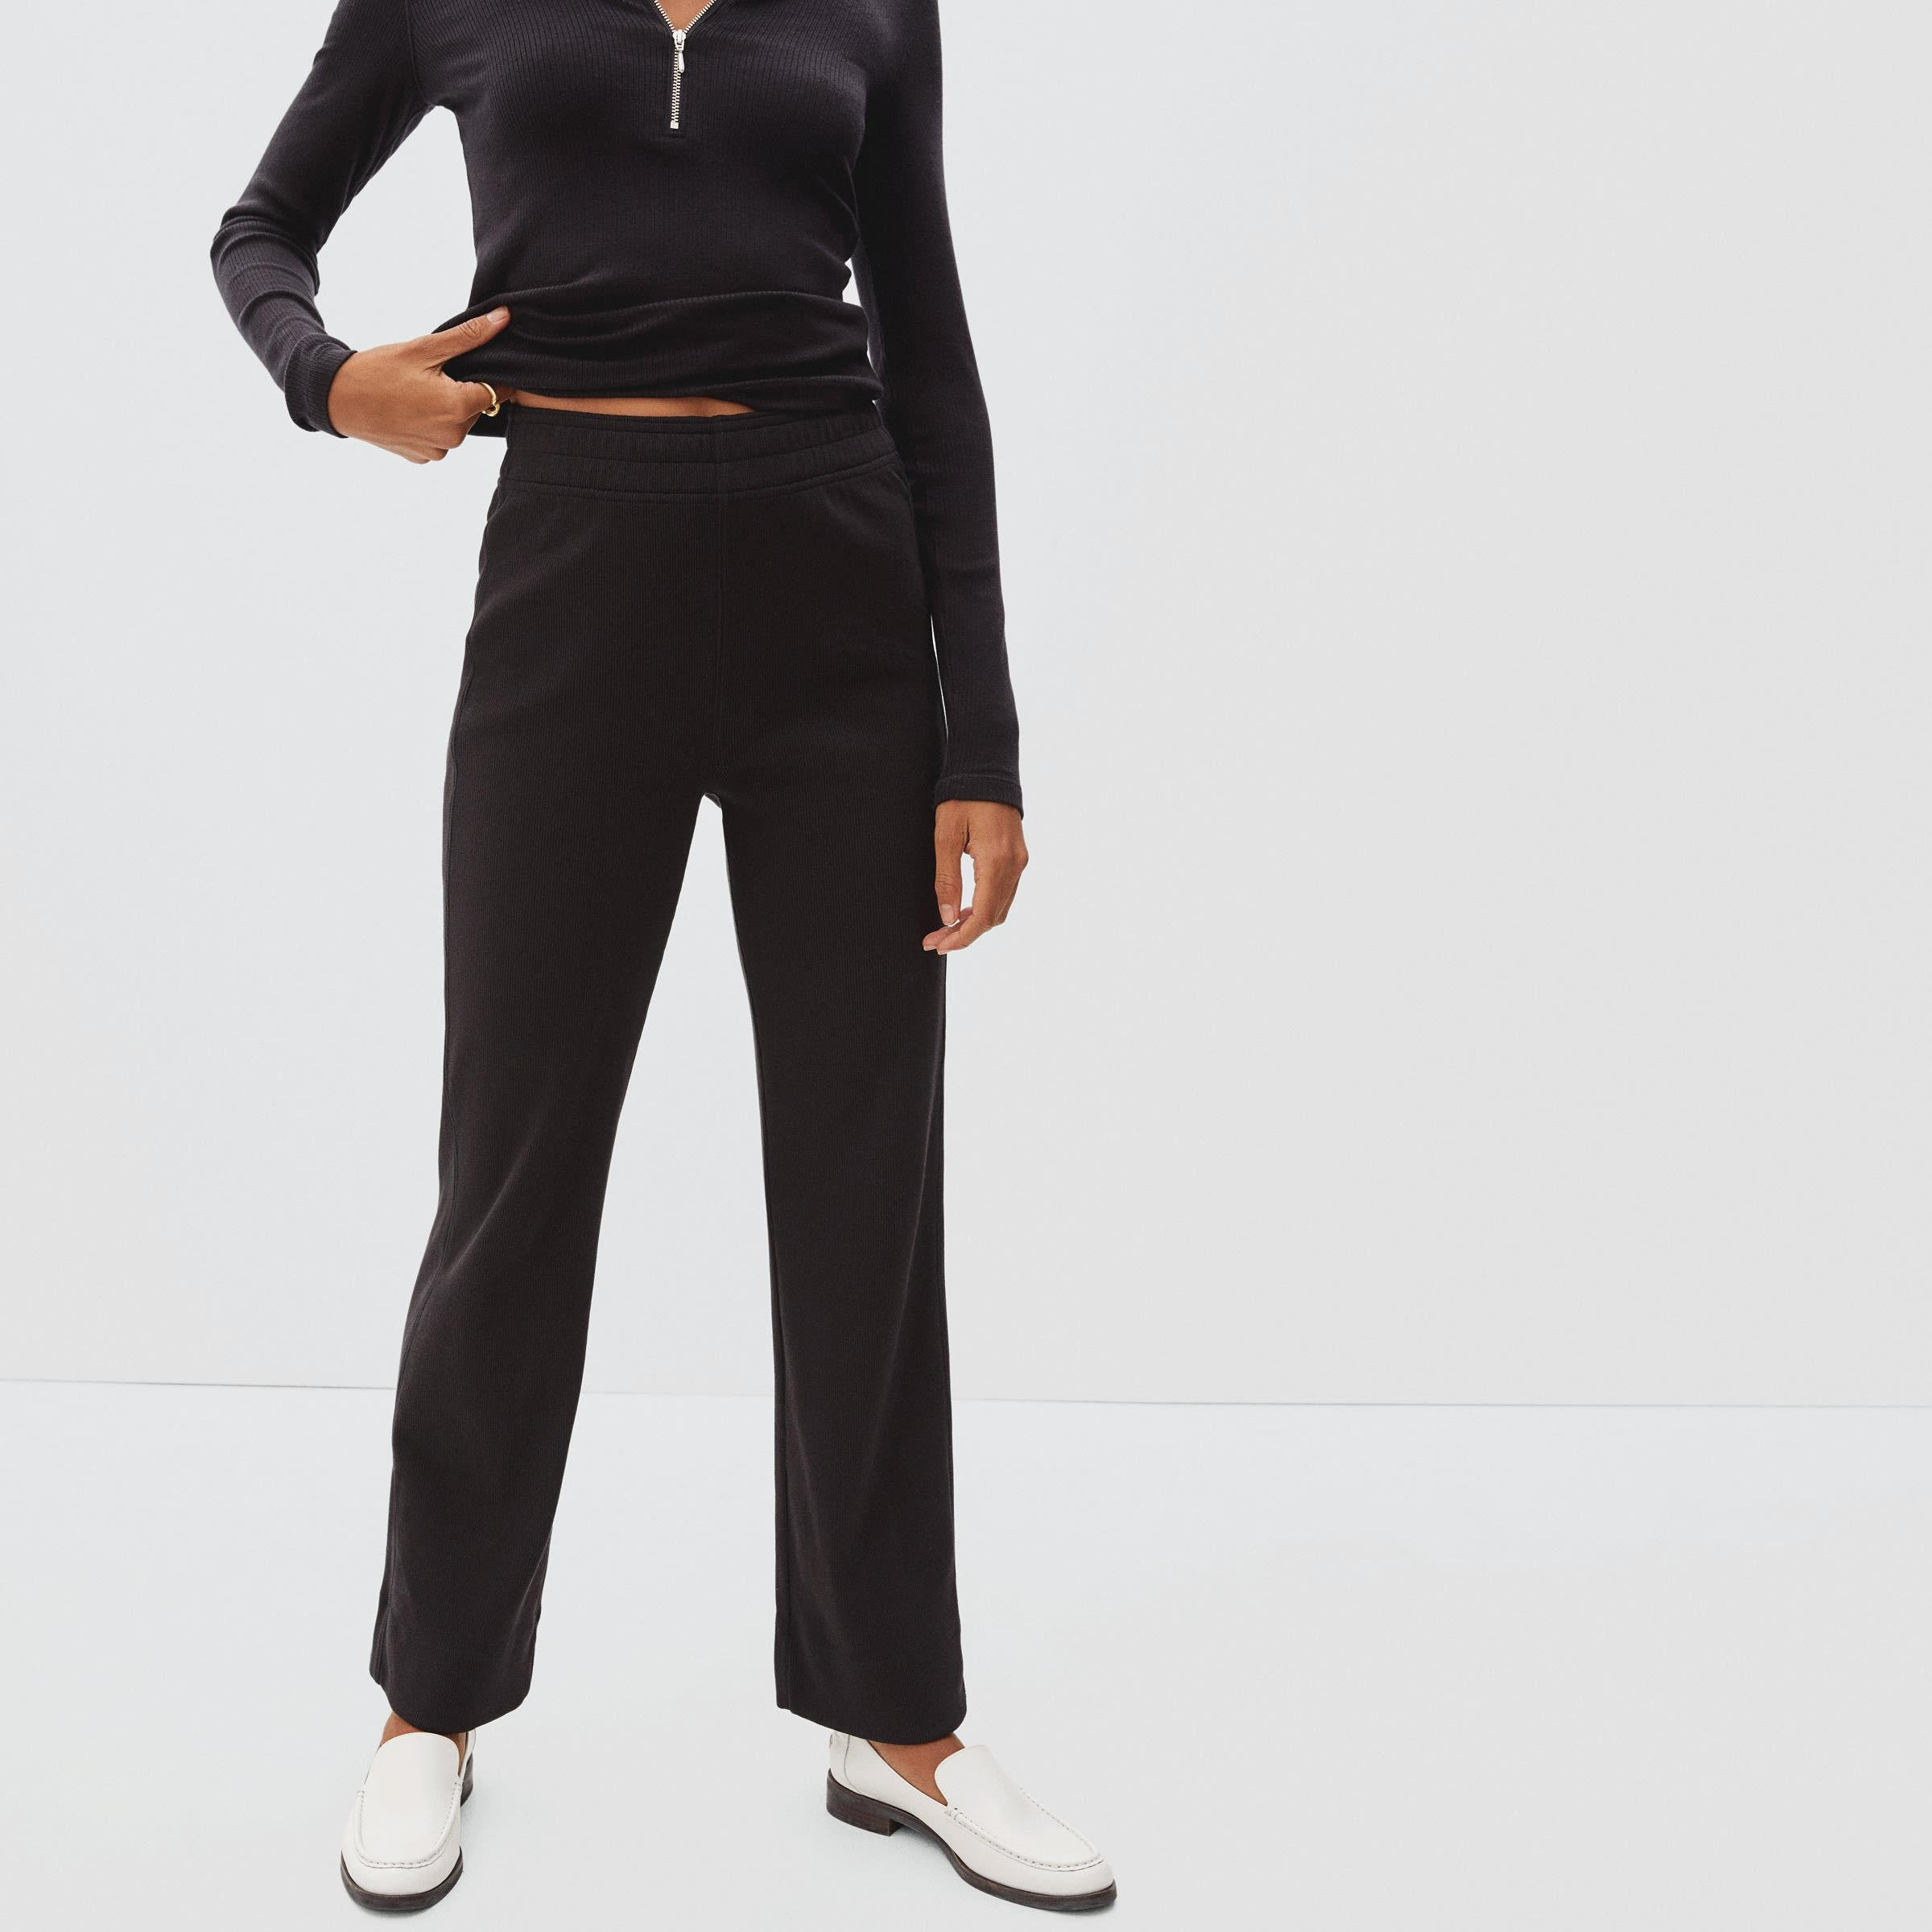 The Ribbed Flare Pant